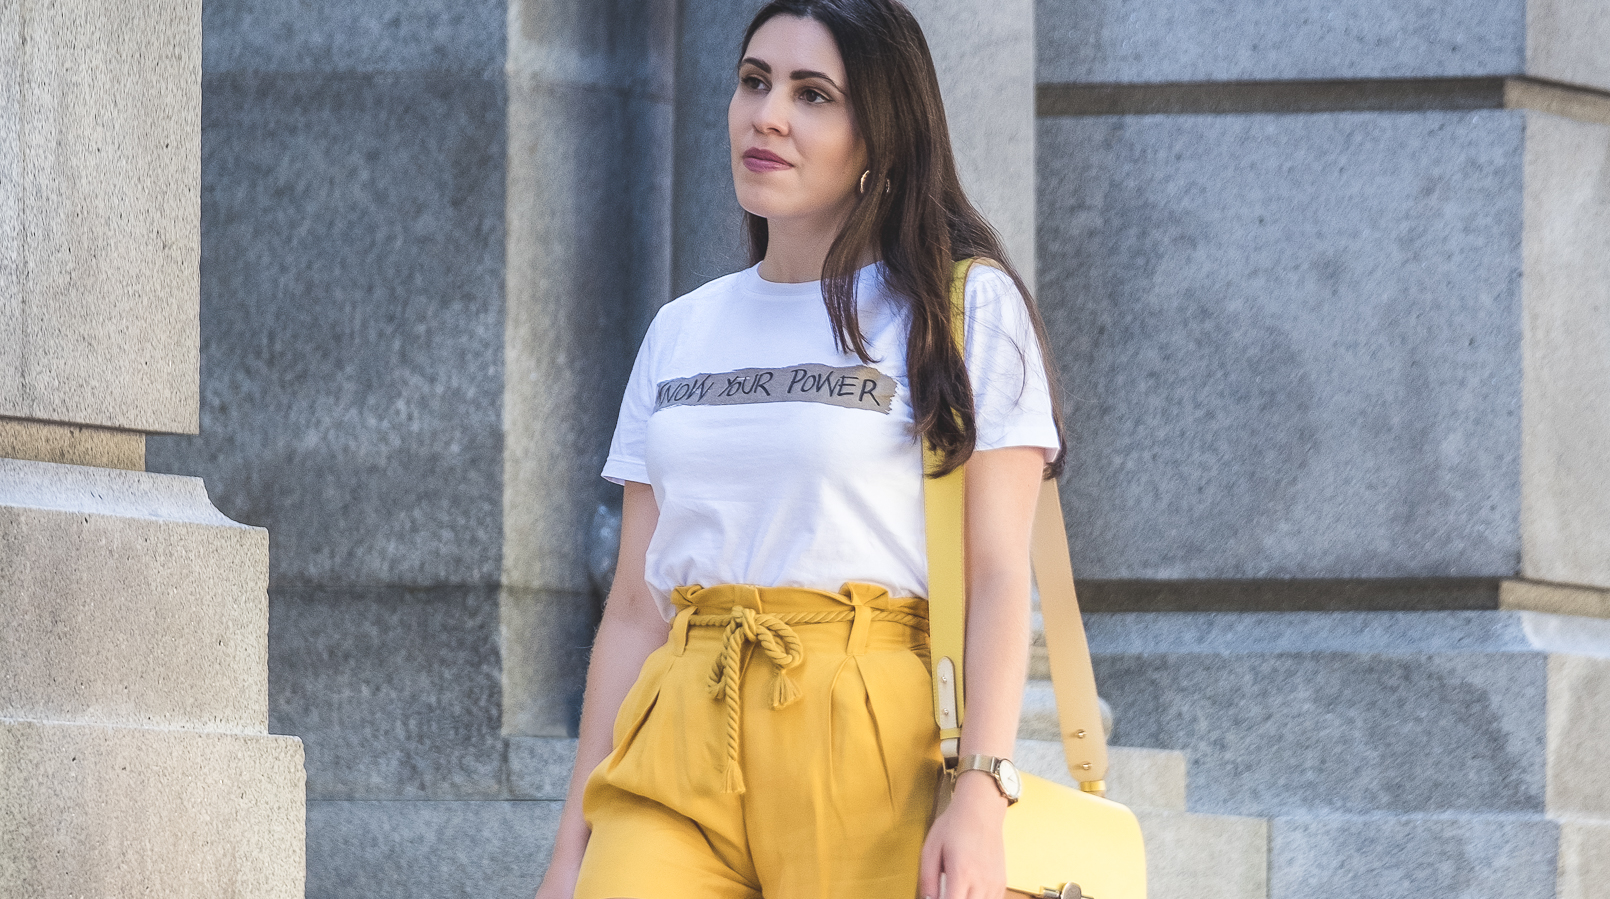 Le Fashionaire How to wear neon (one of next seasons trends) white tee know your power quote neon olive yellow zara rope belt shorts yellow brown beige massimo dutti leather bag 5452F EN